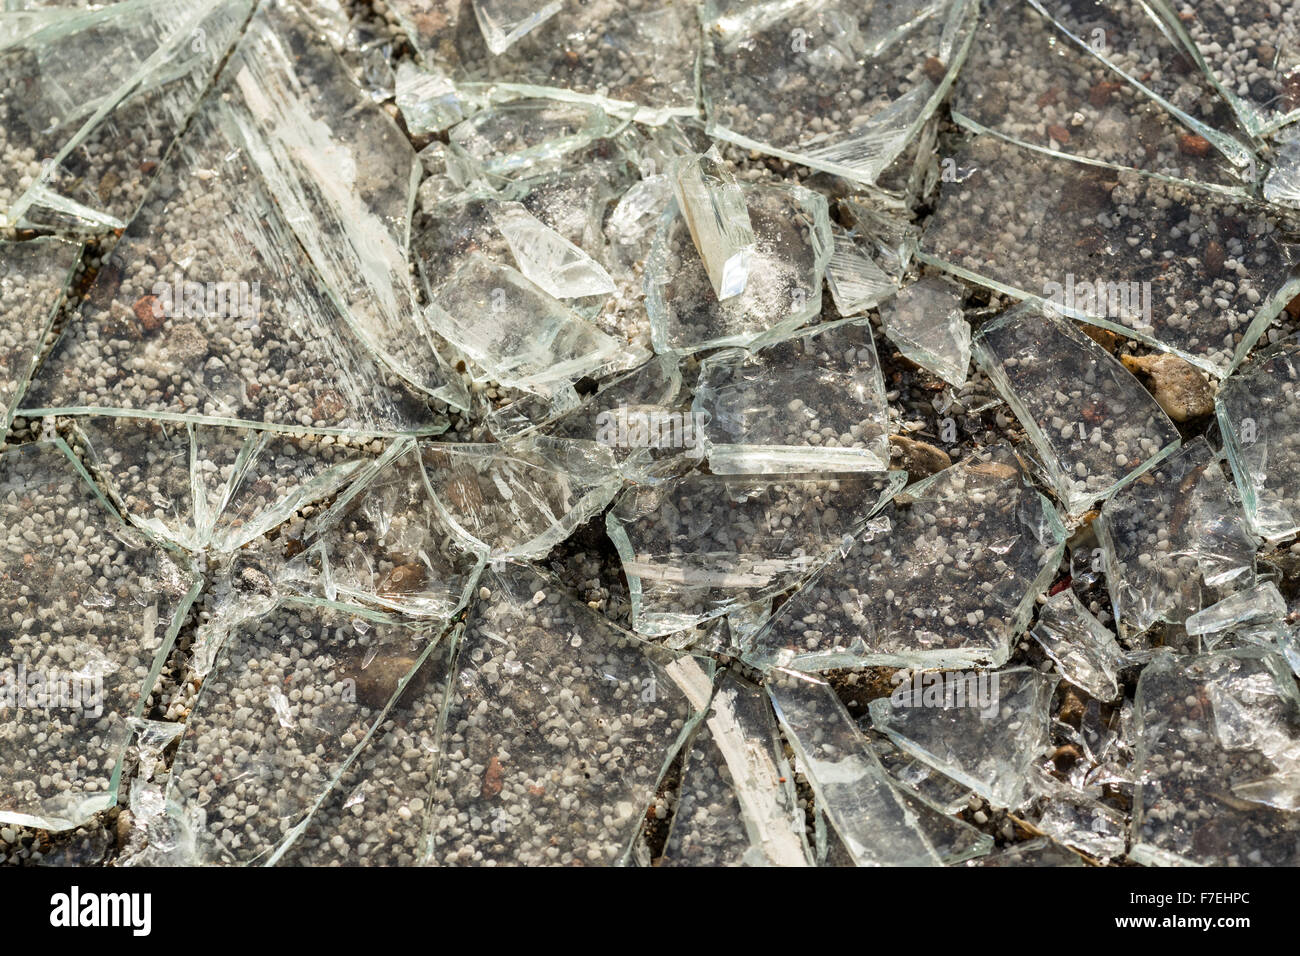 Macro shot of broken glass shards on a concrete pavement background - Stock Image